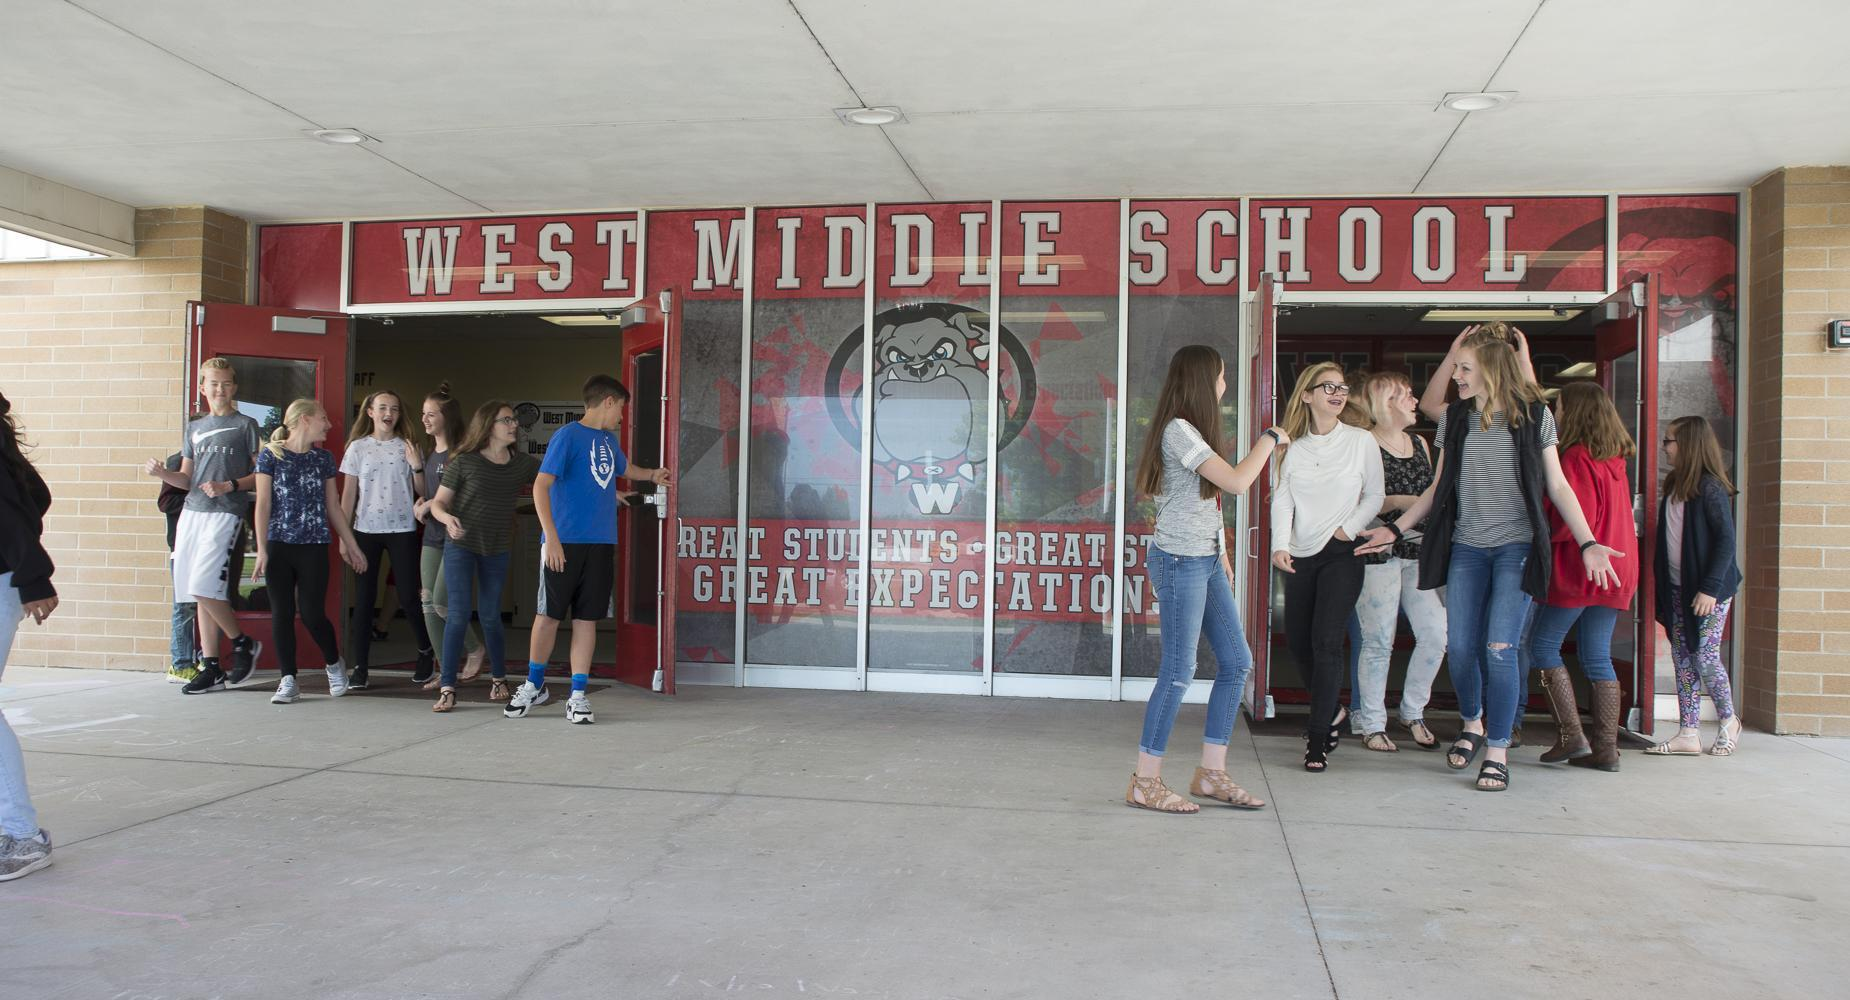 Students leave through the front entrance of the school